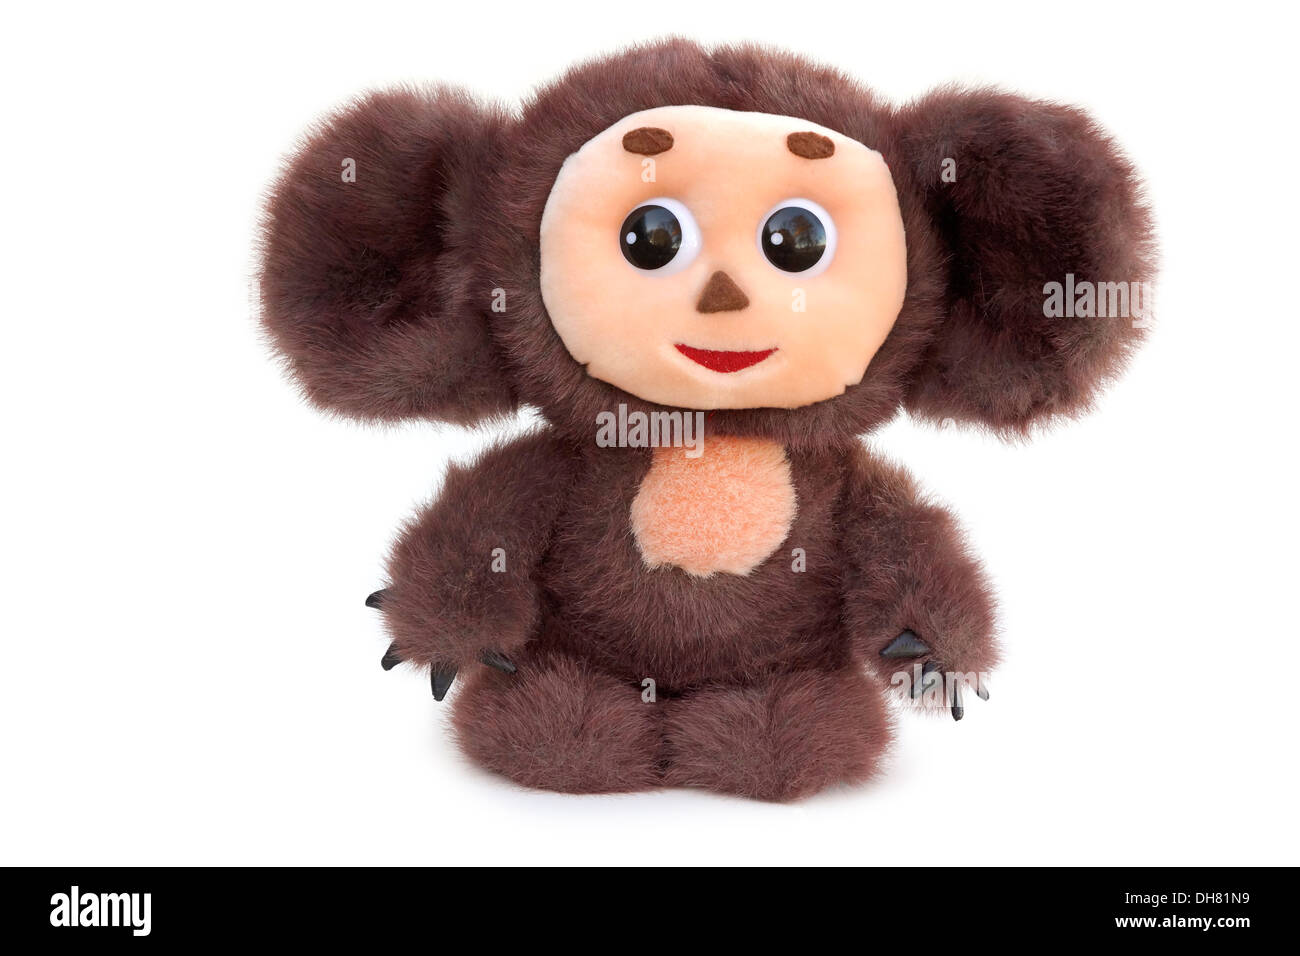 Cheburashka, Soft Toy, Russian Cartoon Character - Stock Image